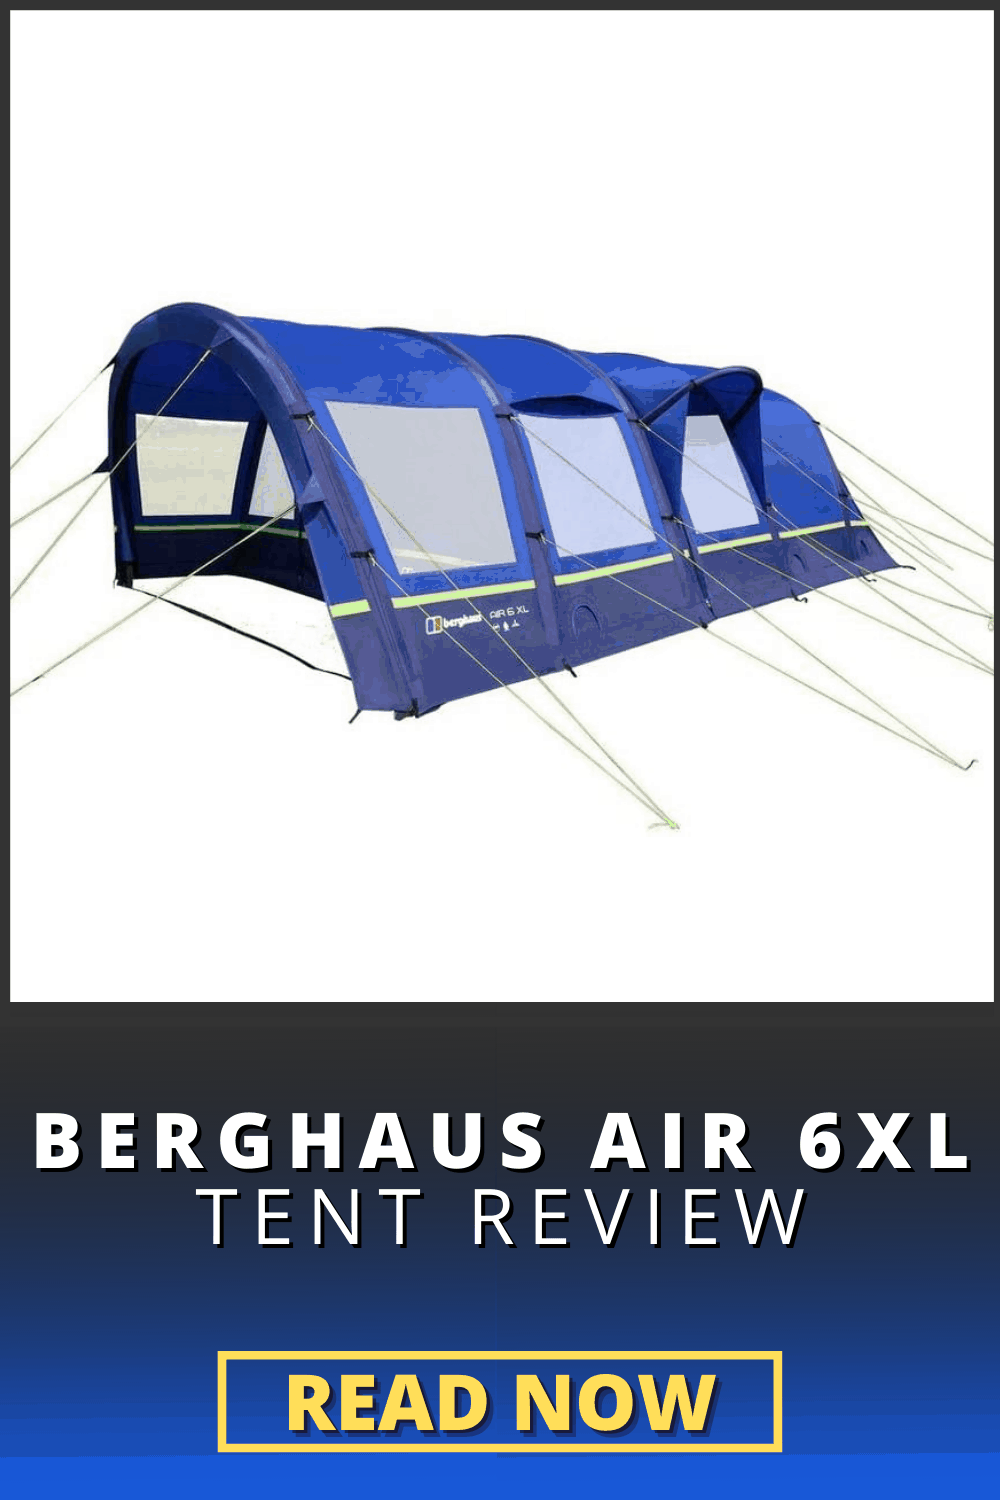 Berghaus Air 6XL